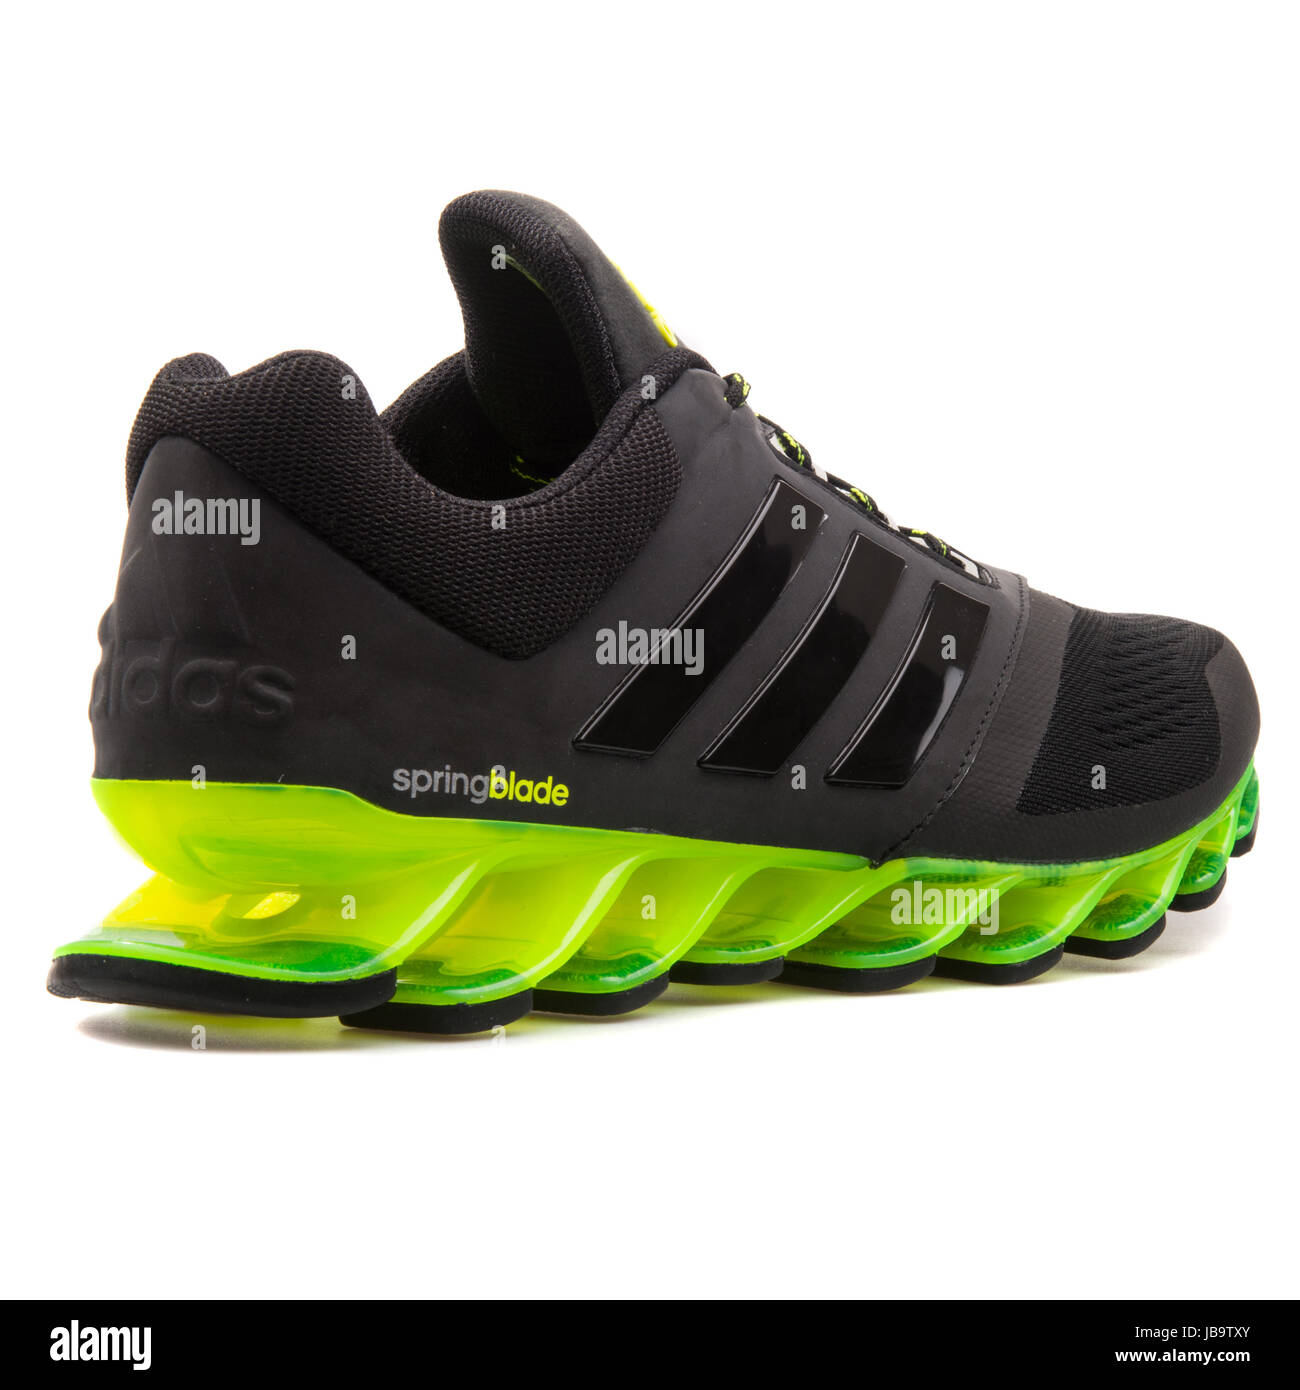 outlet store 245d8 50c25 canada adidas springblade 2 m 91746 3137b